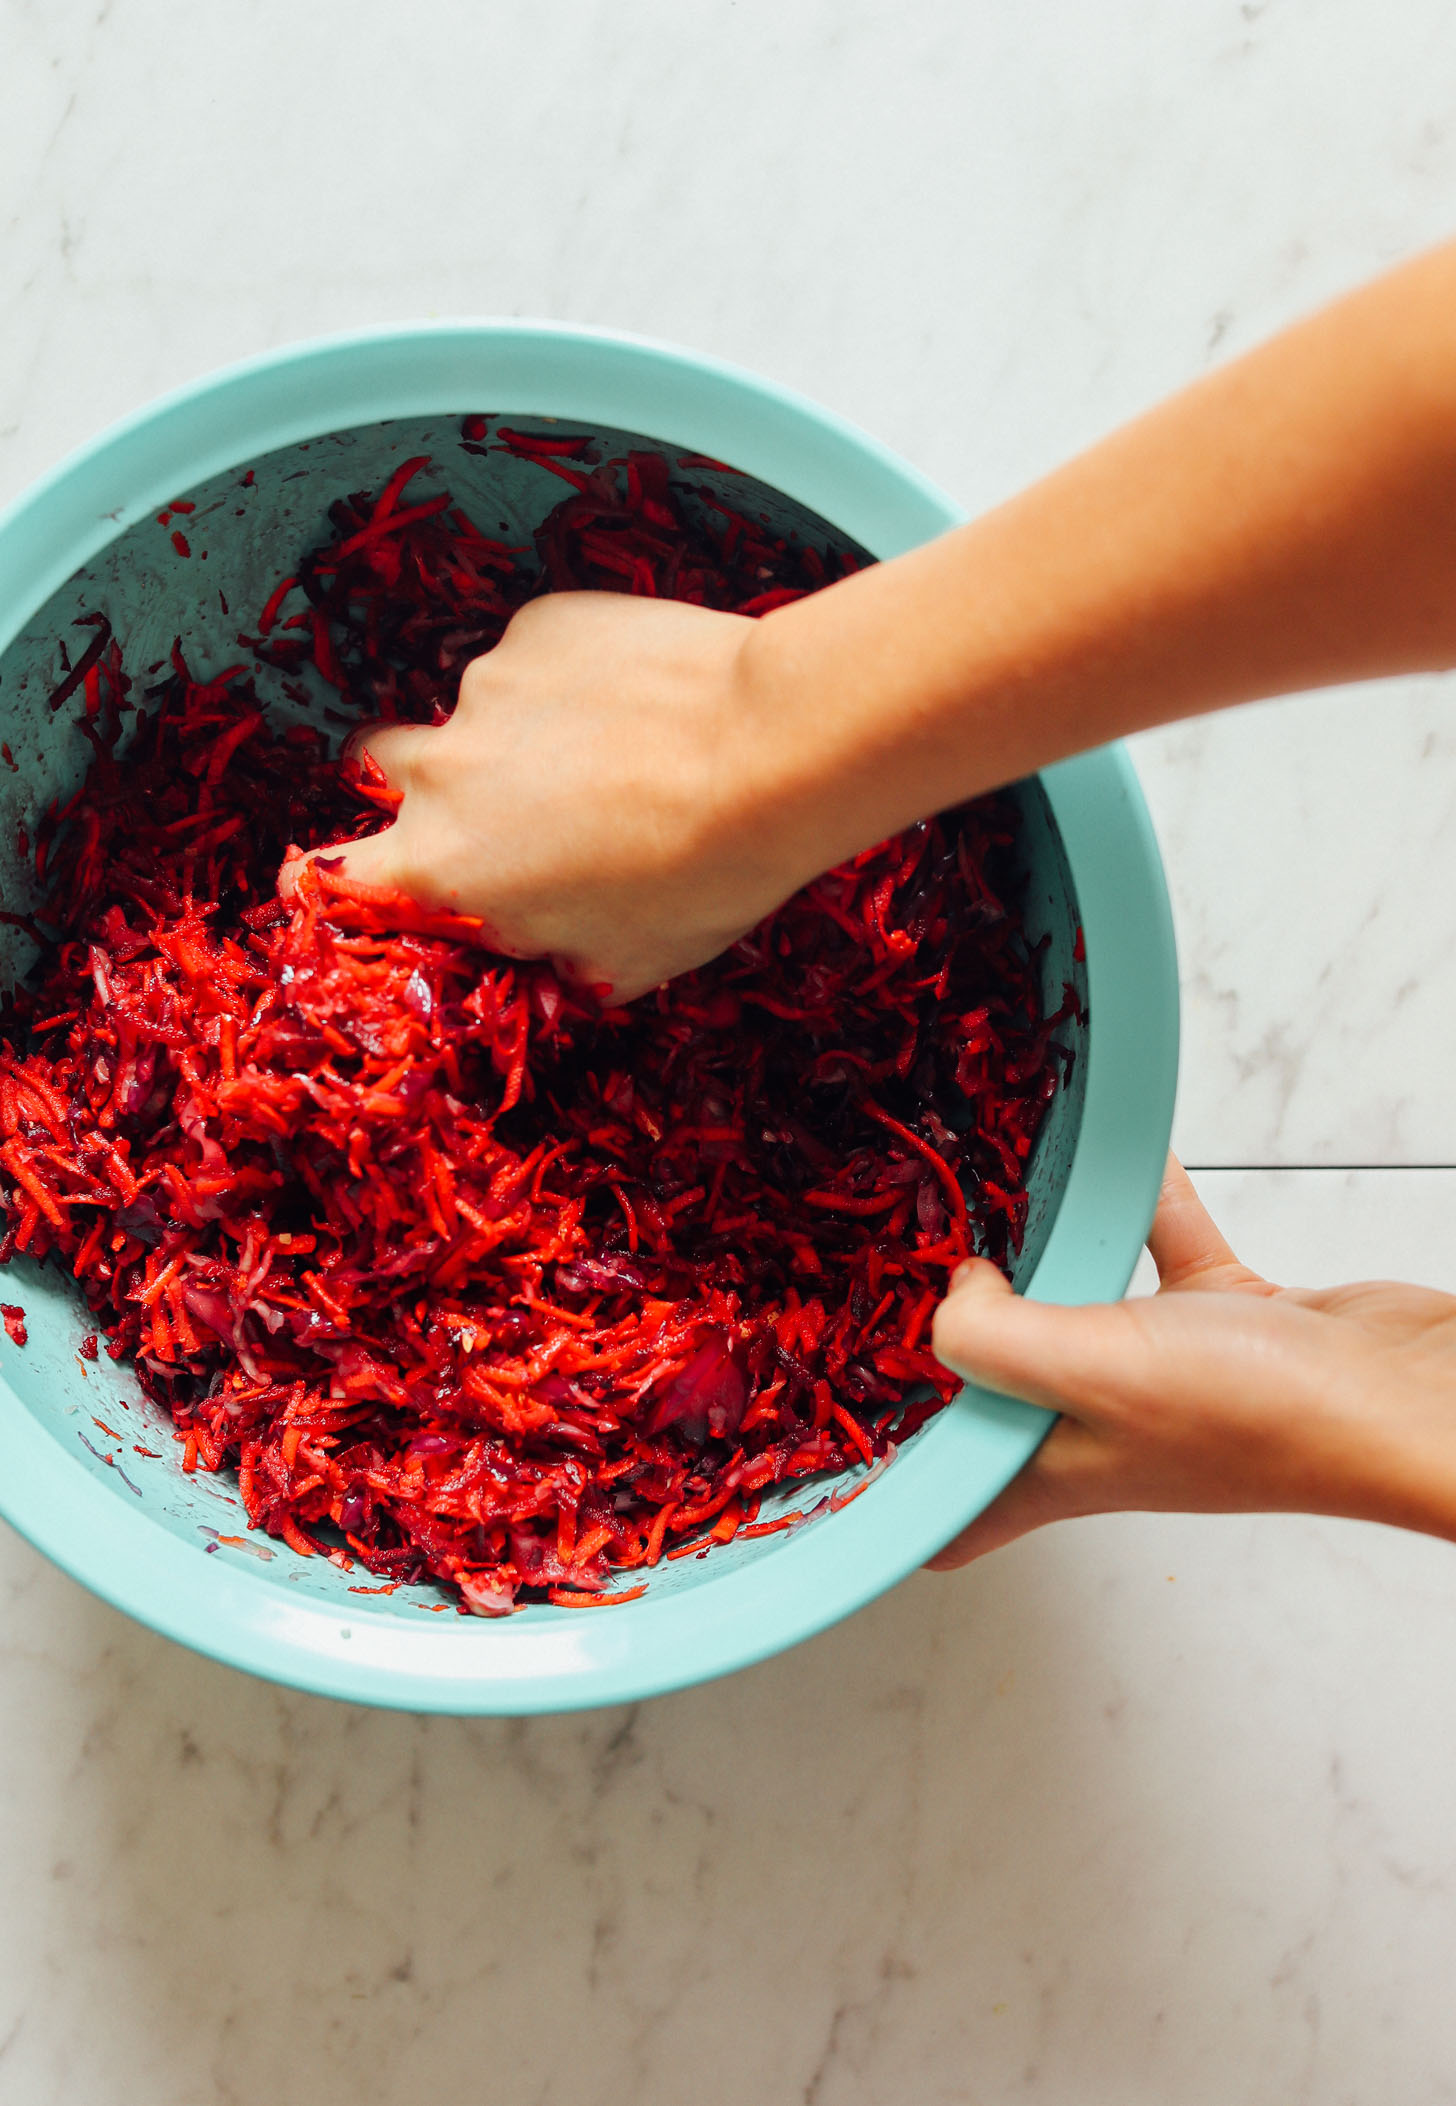 Massaging beets, carrots, and cabbage for homemade sauerkraut